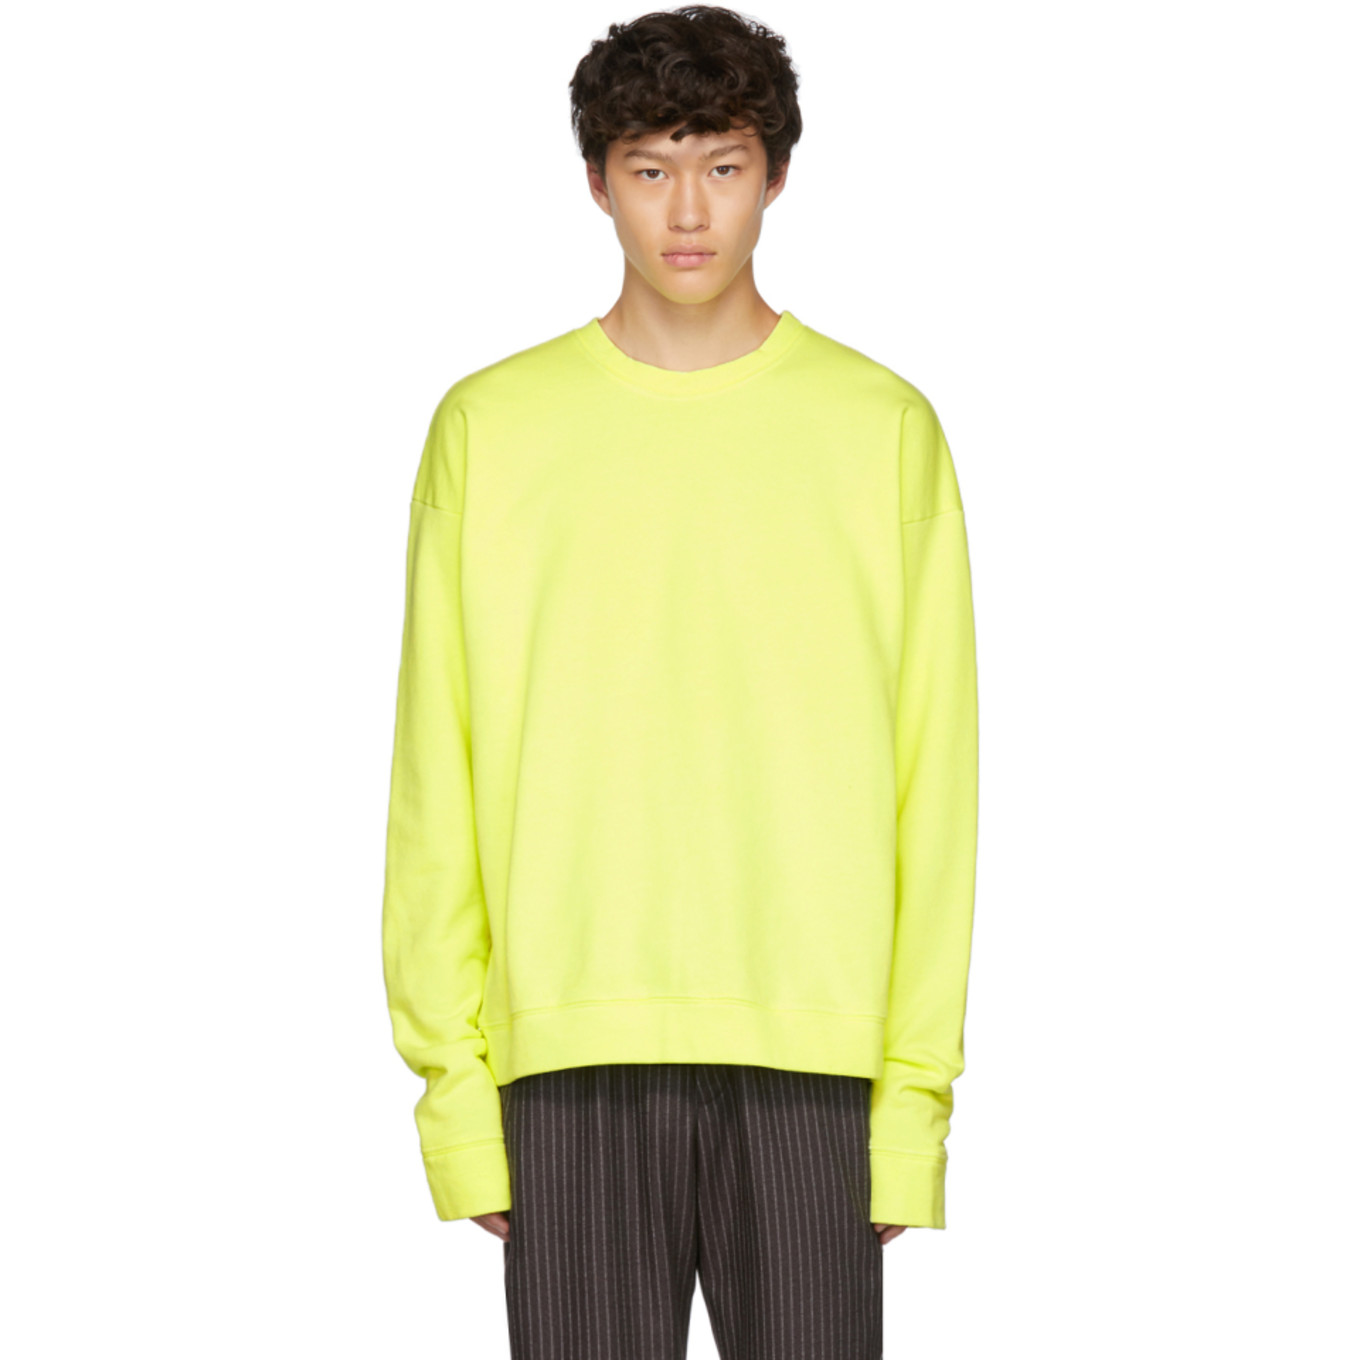 Yellow Dip Dyed Fleece Sweatshirt by The Elder Statesman